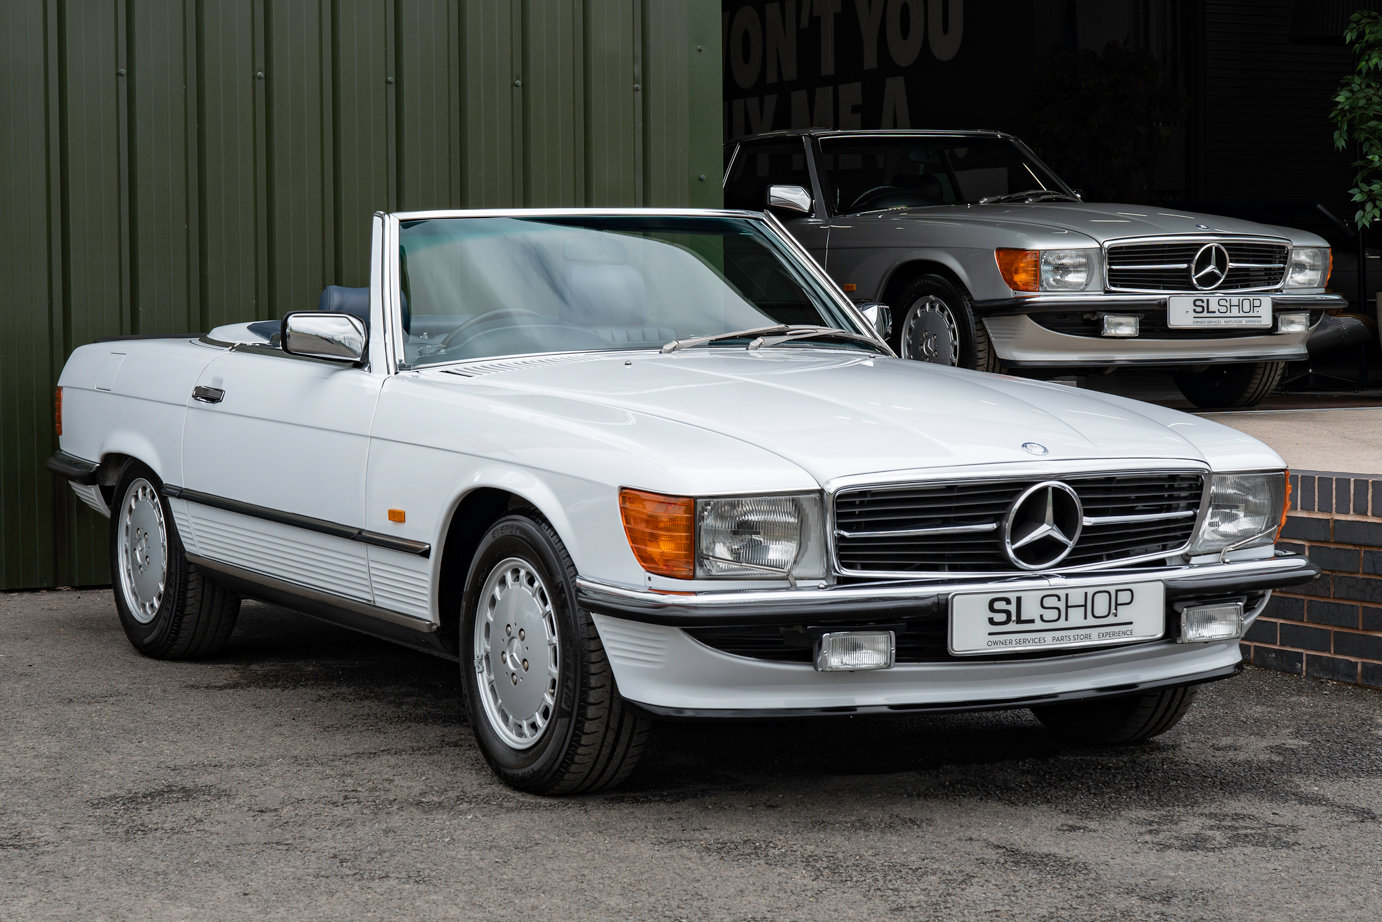 1988 Mercedes-Benz 500SL V8 (R107) #2091 Blue Leather 85k Miles For Sale (picture 1 of 6)